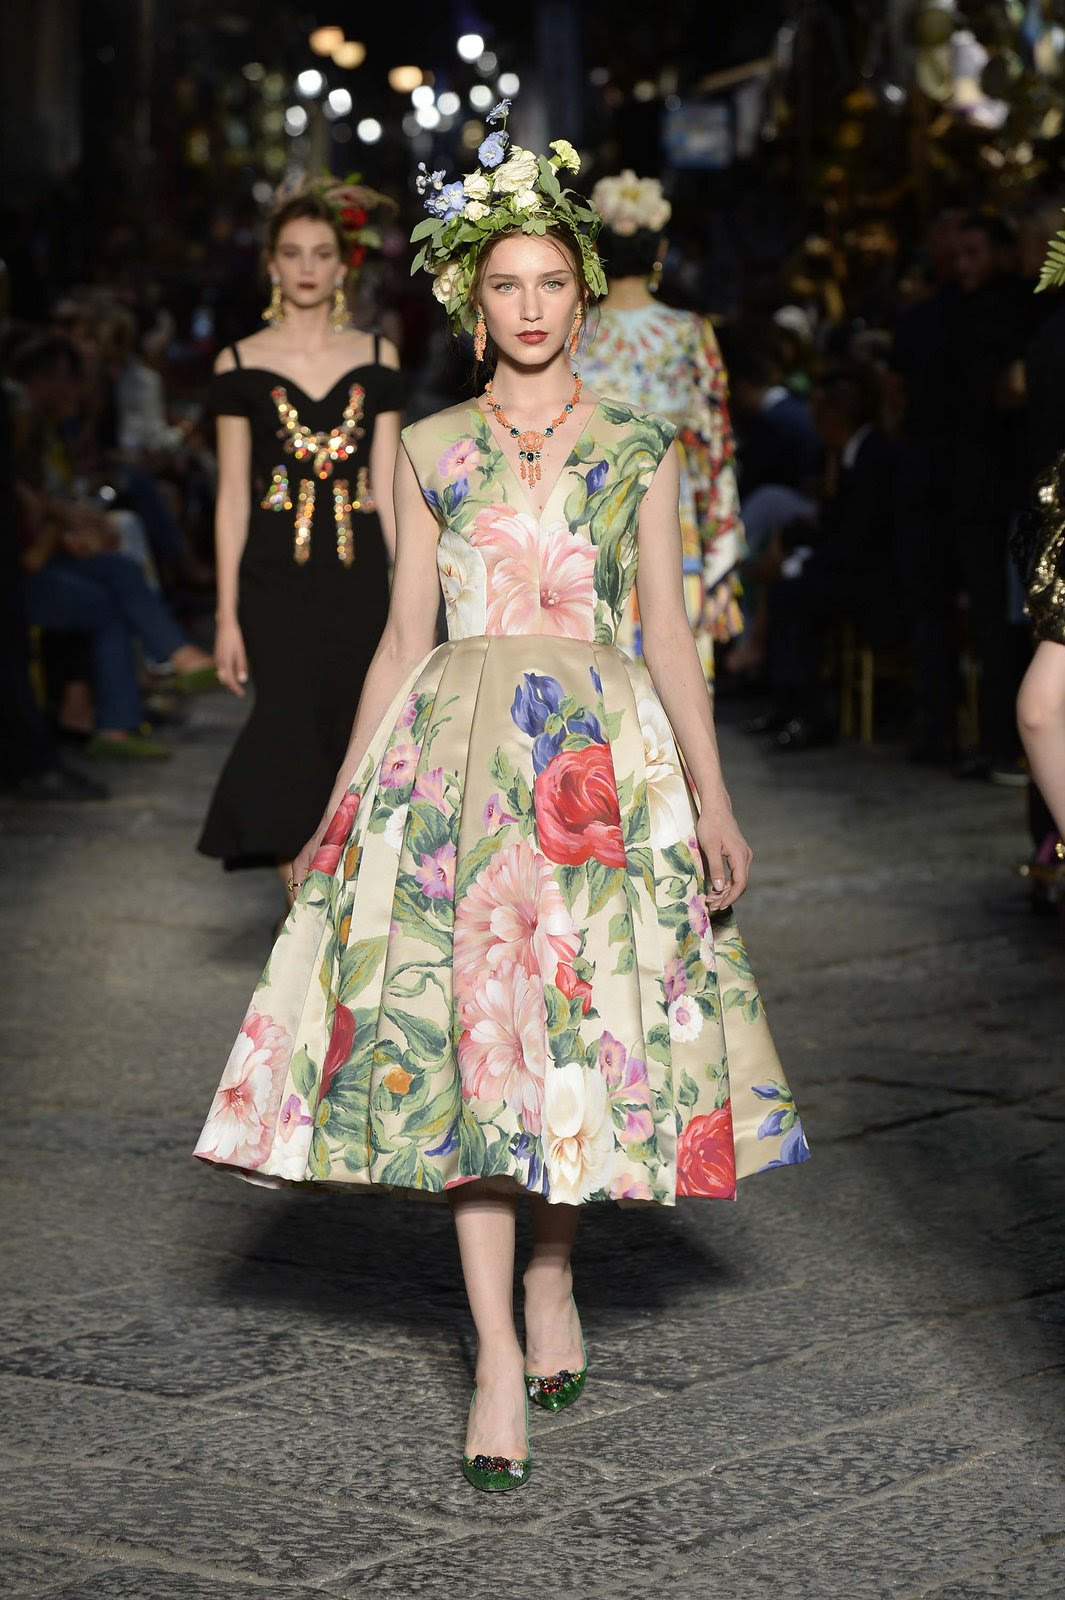 http://media.vogue.com/r/h_1600,w_1240/2016/07/09/08-dolce-and-gabbana-alta-moda-2016.jpg